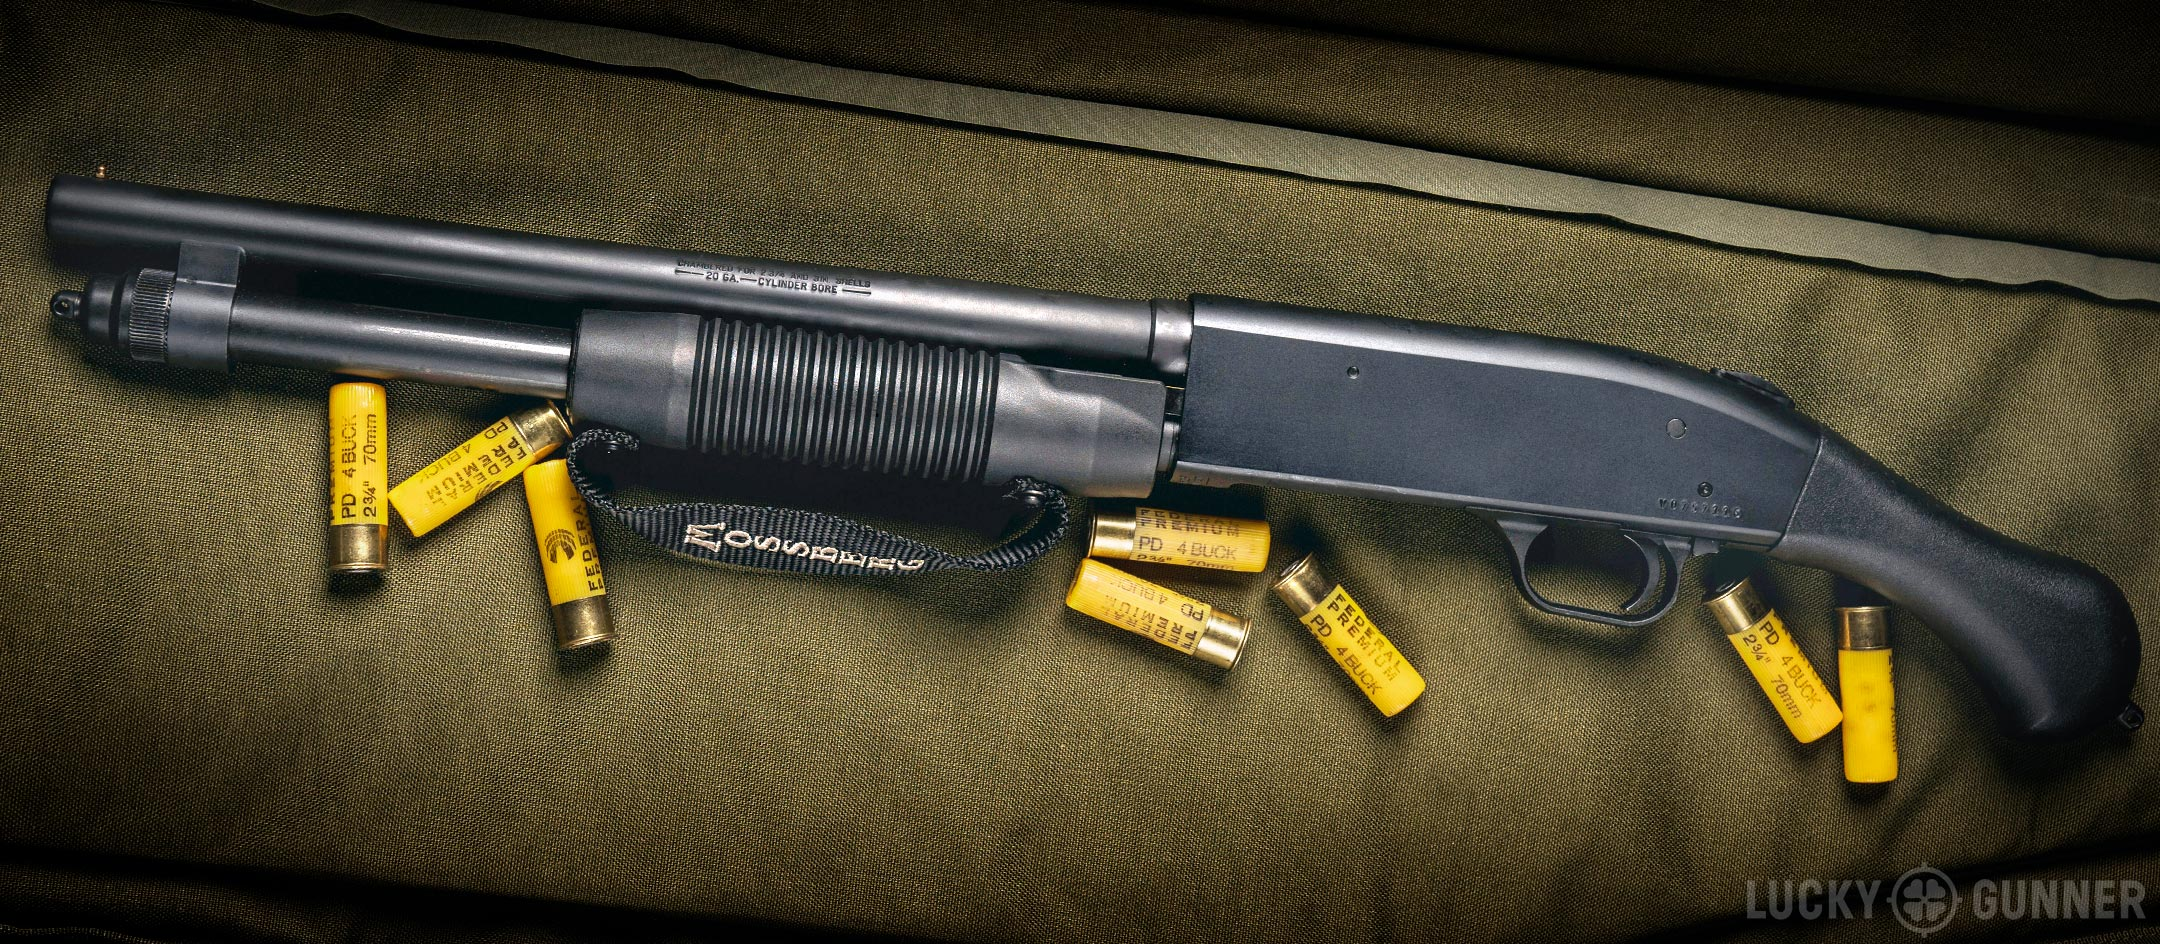 The Mossberg Shockwave is Mostly Useless - Lucky Gunner Lounge